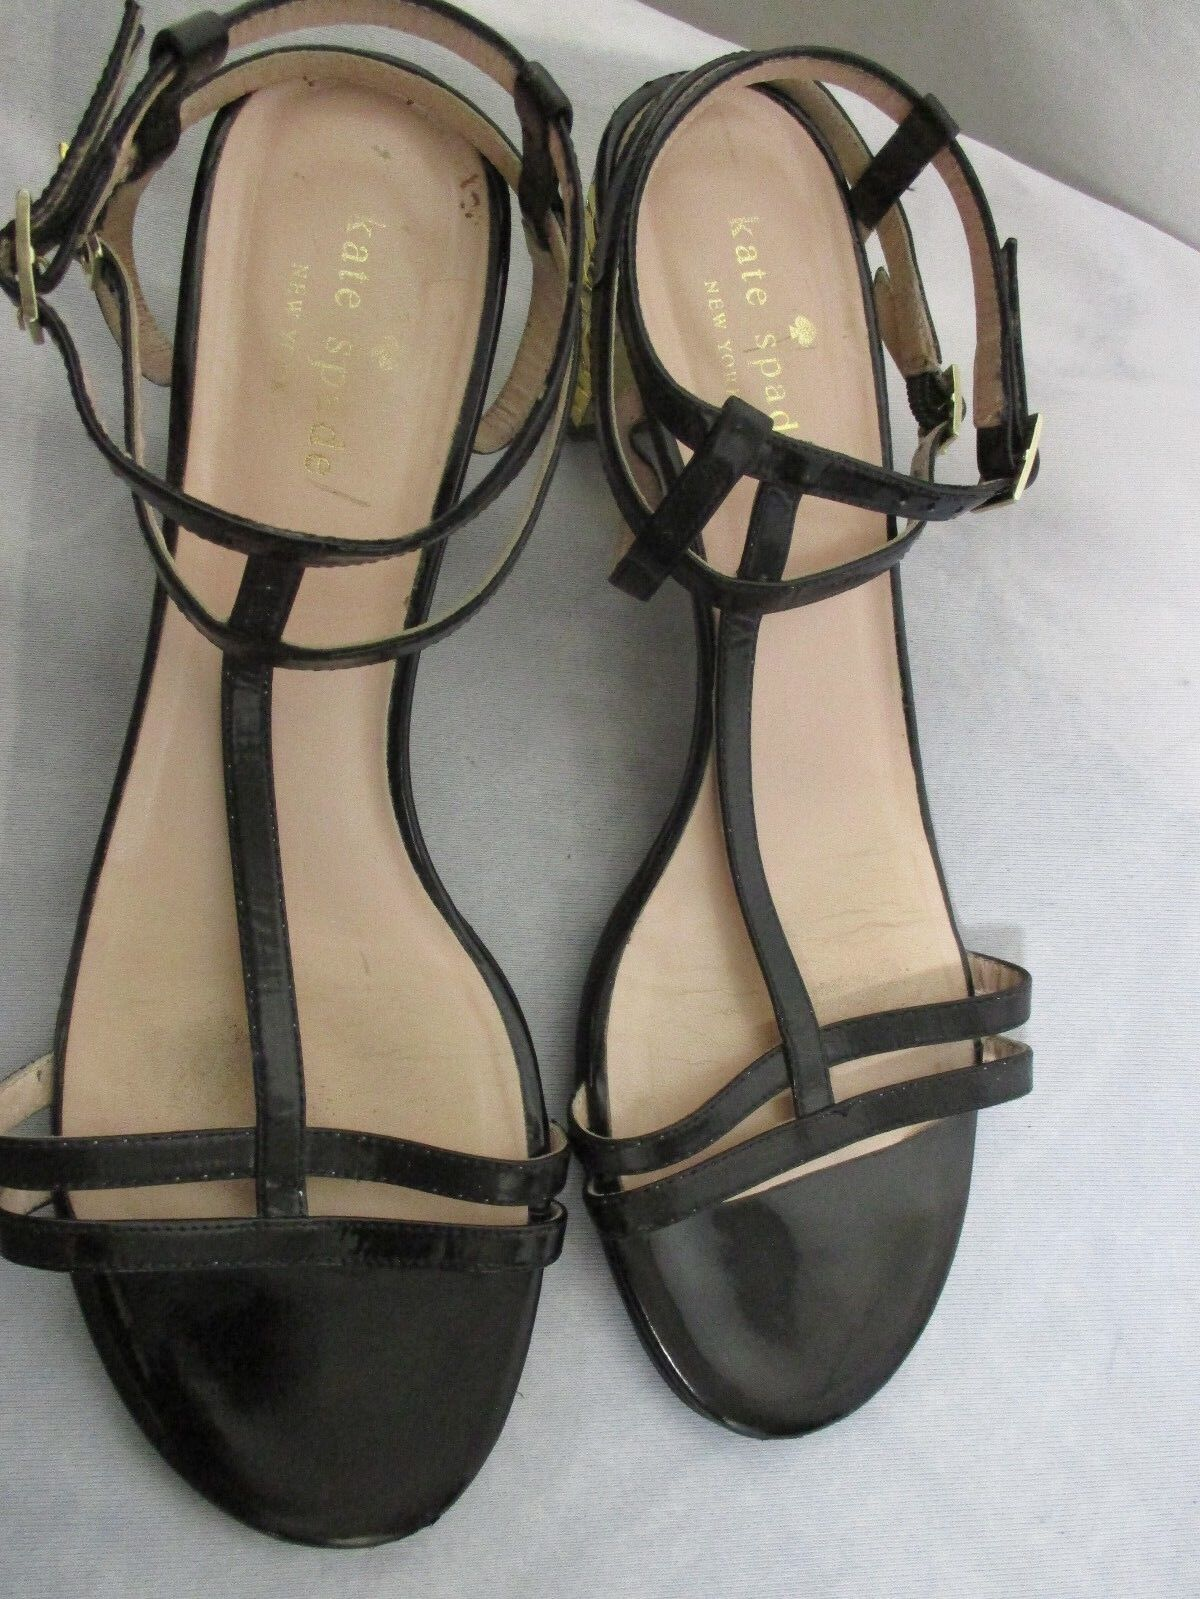 KATE SPADE Women's 'Annmarie' Gold Heel Leather Strappy Sandals Size 8B